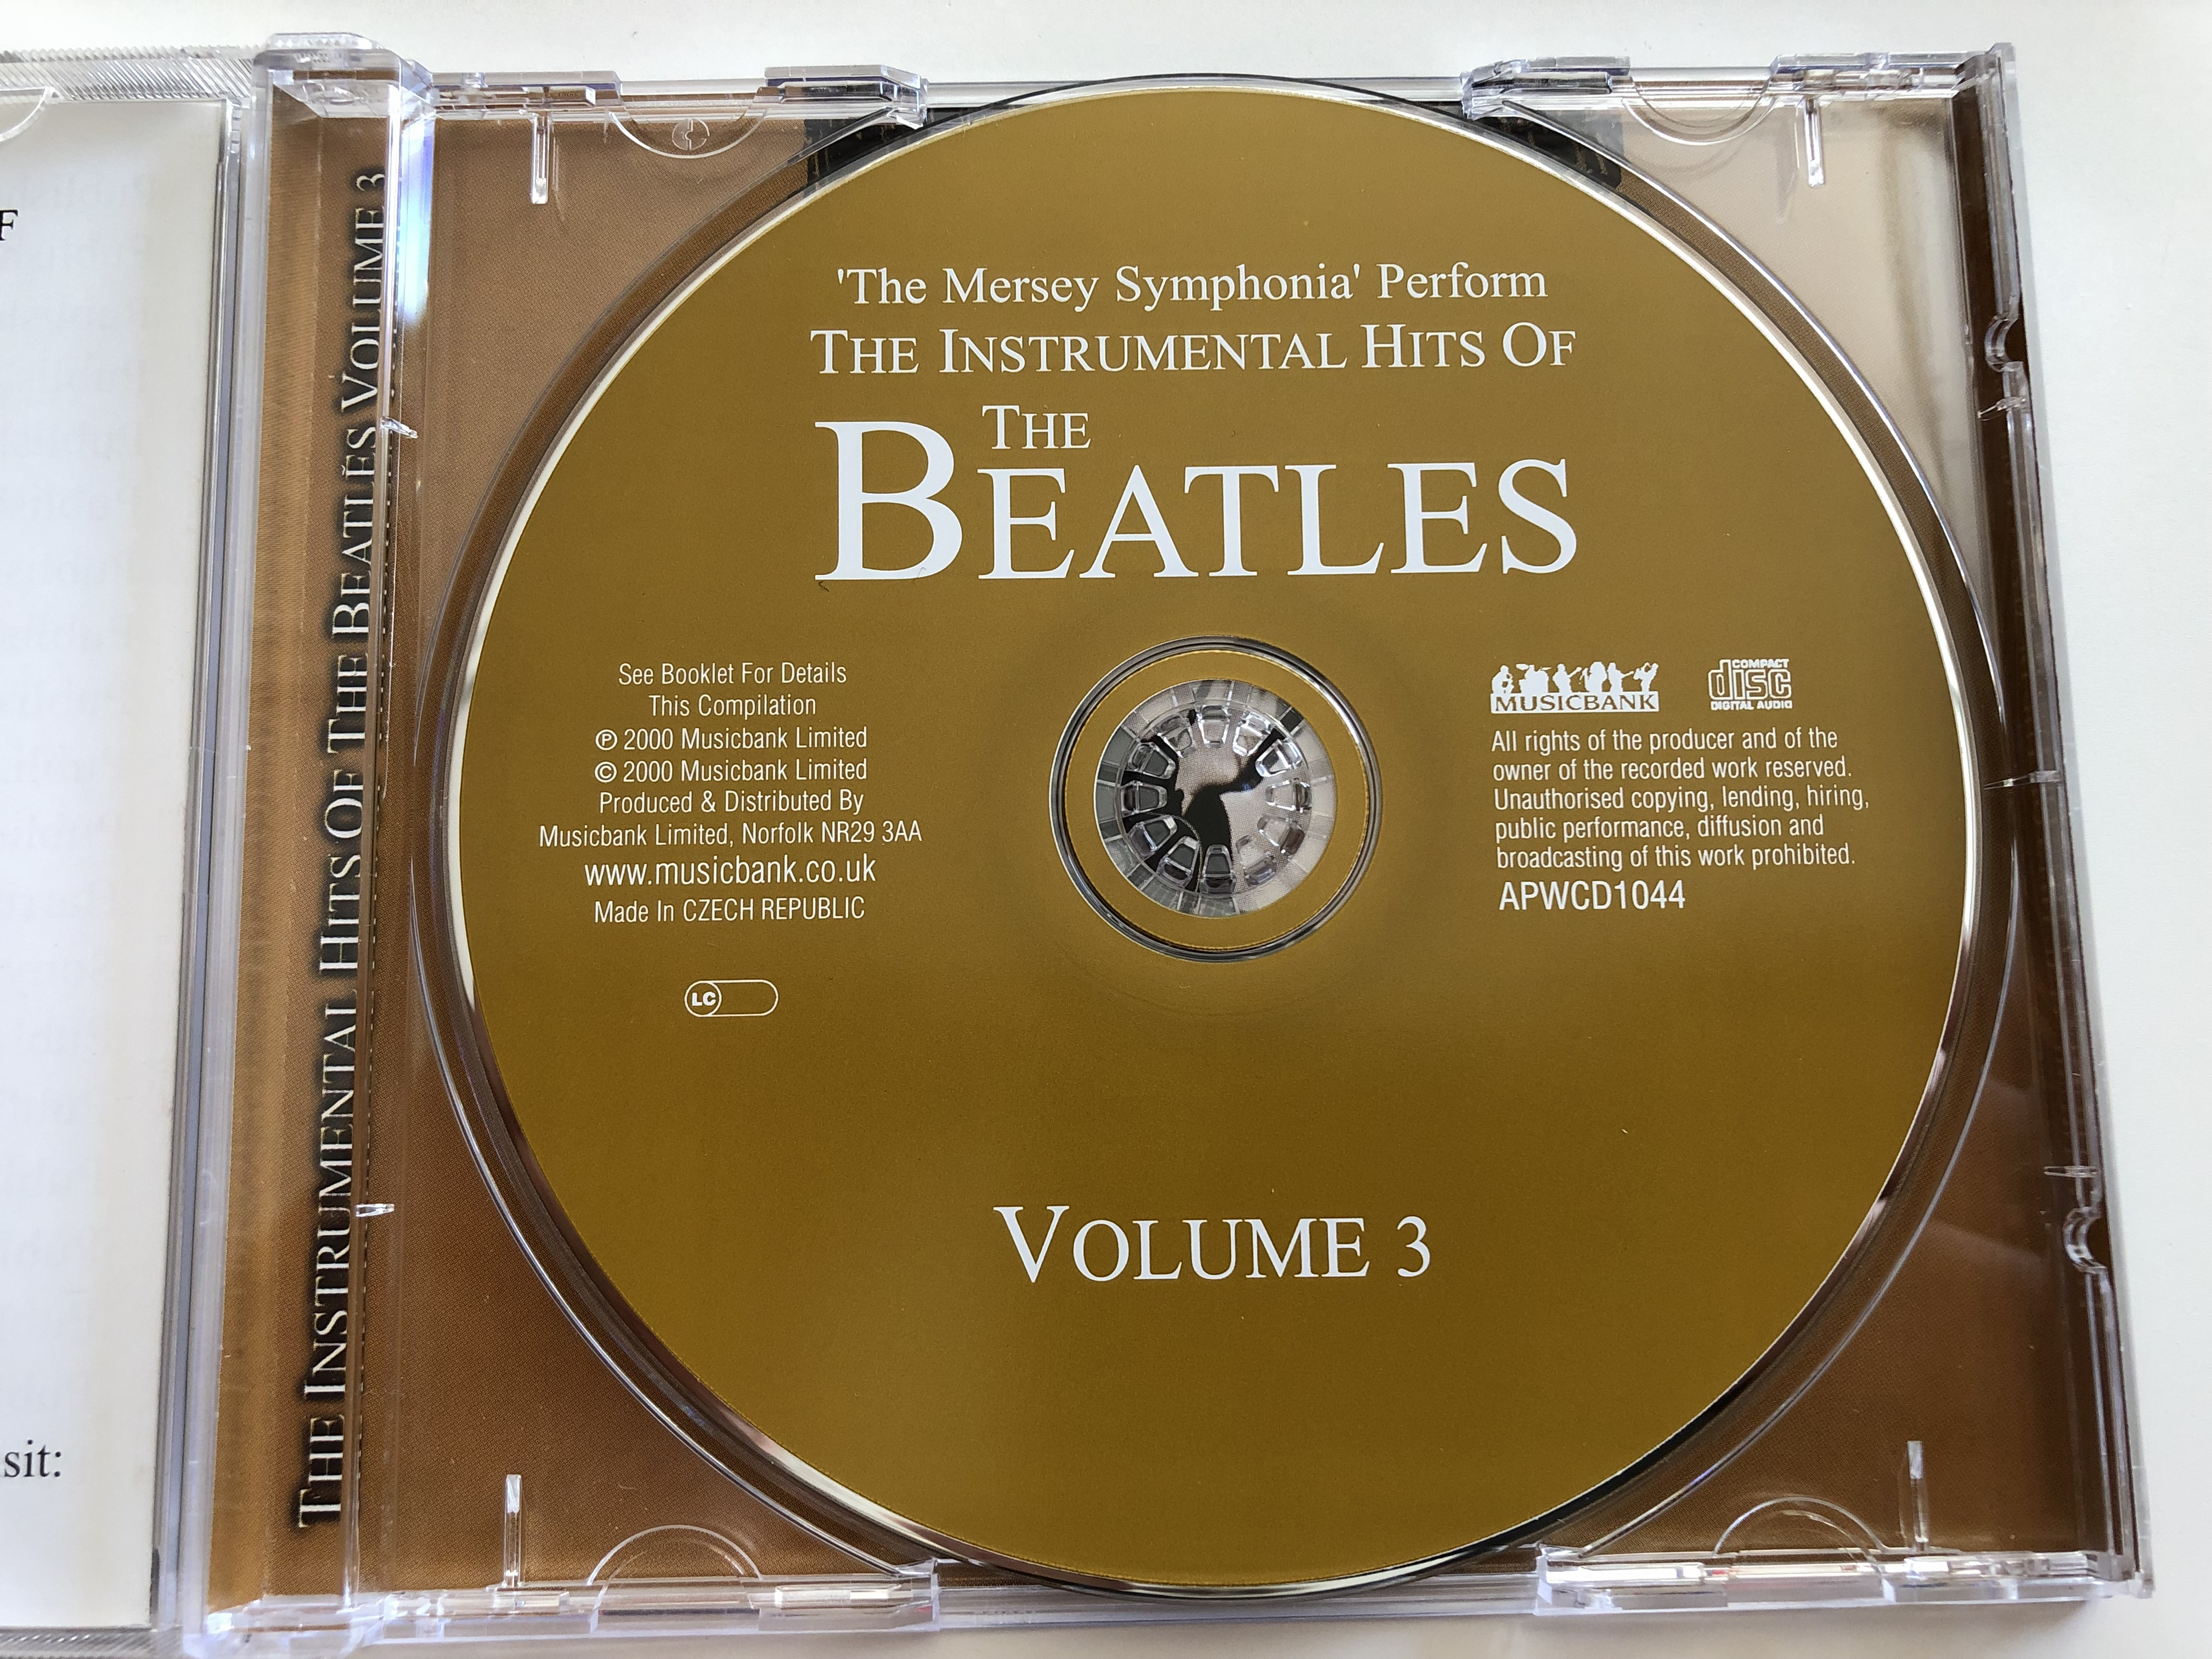 the-instrumental-hits-of-the-beatles-vol.-3-mersey-symphonia-20-beautifully-arranged-instrumentals-lady-madonna-help-she-loves-you-audio-cd-2000-apwcd1044-musicbank-4-.jpg